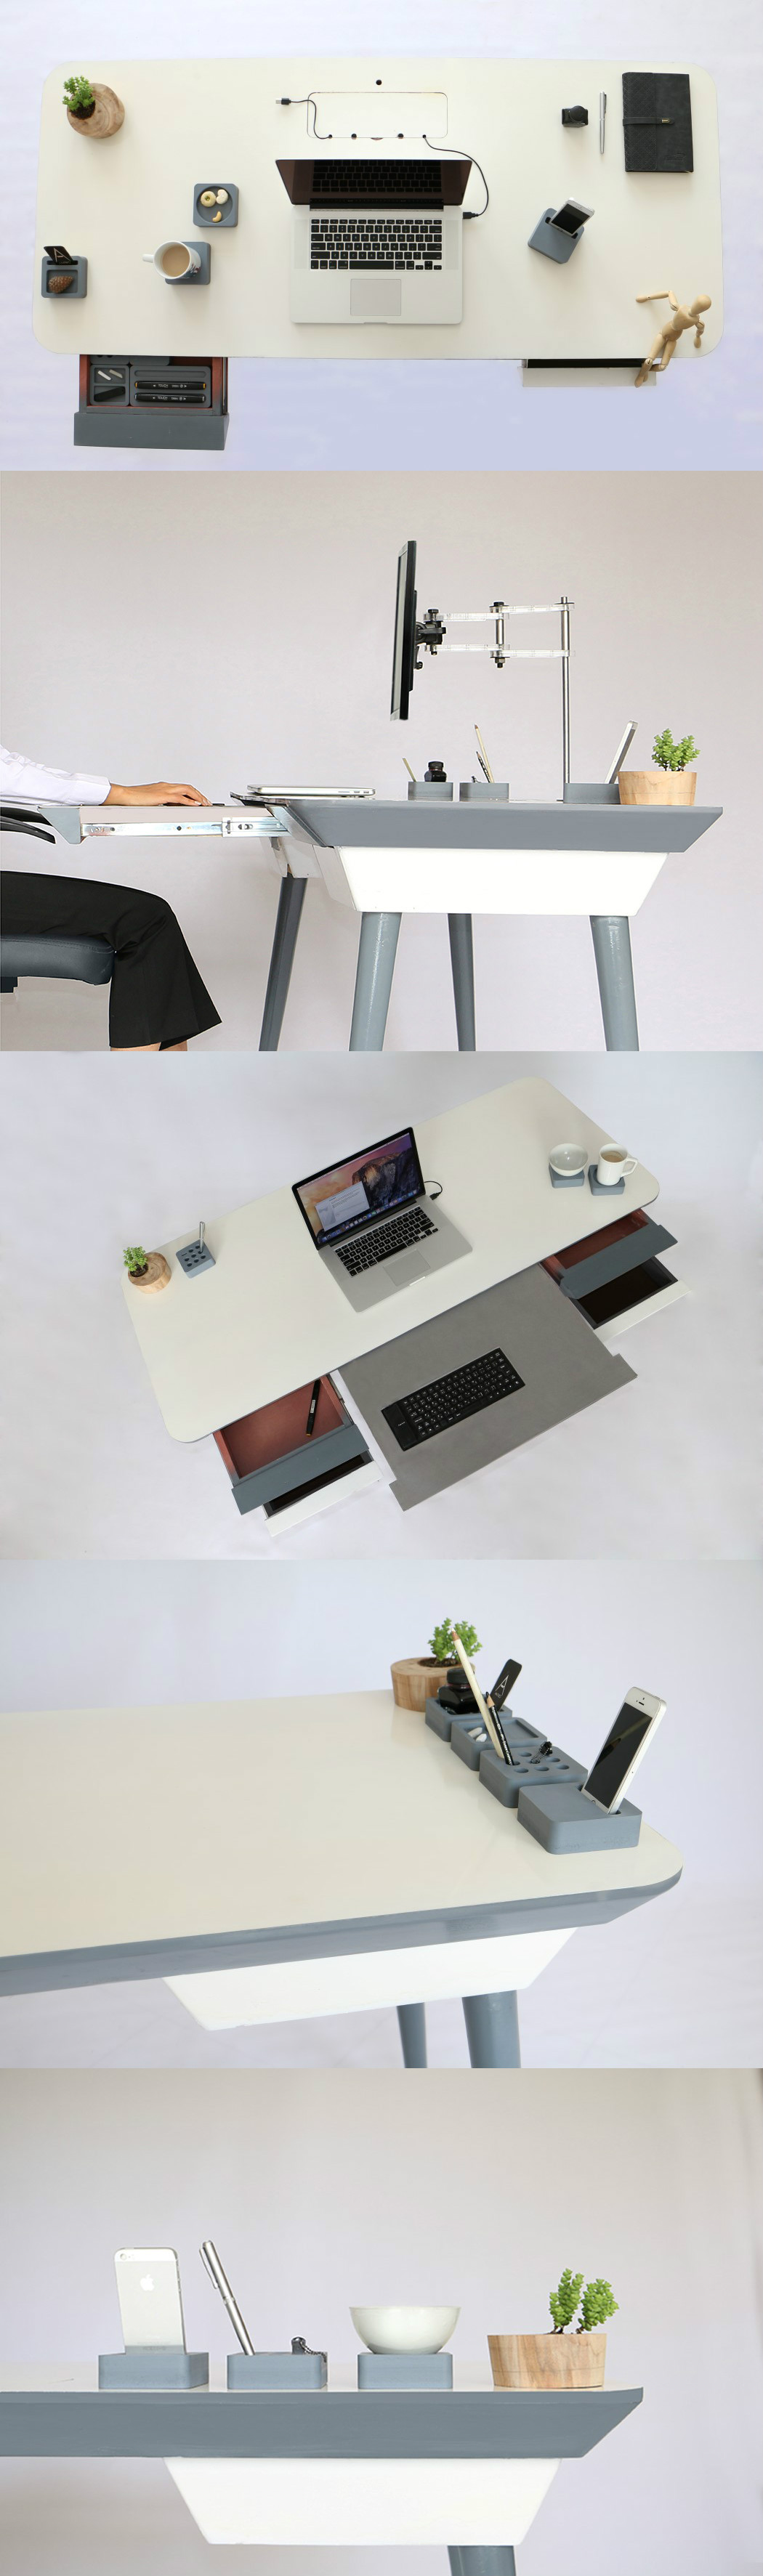 Möbeldesign Verdienst The Work Desk You Deserve Read More At Yanko Design Office